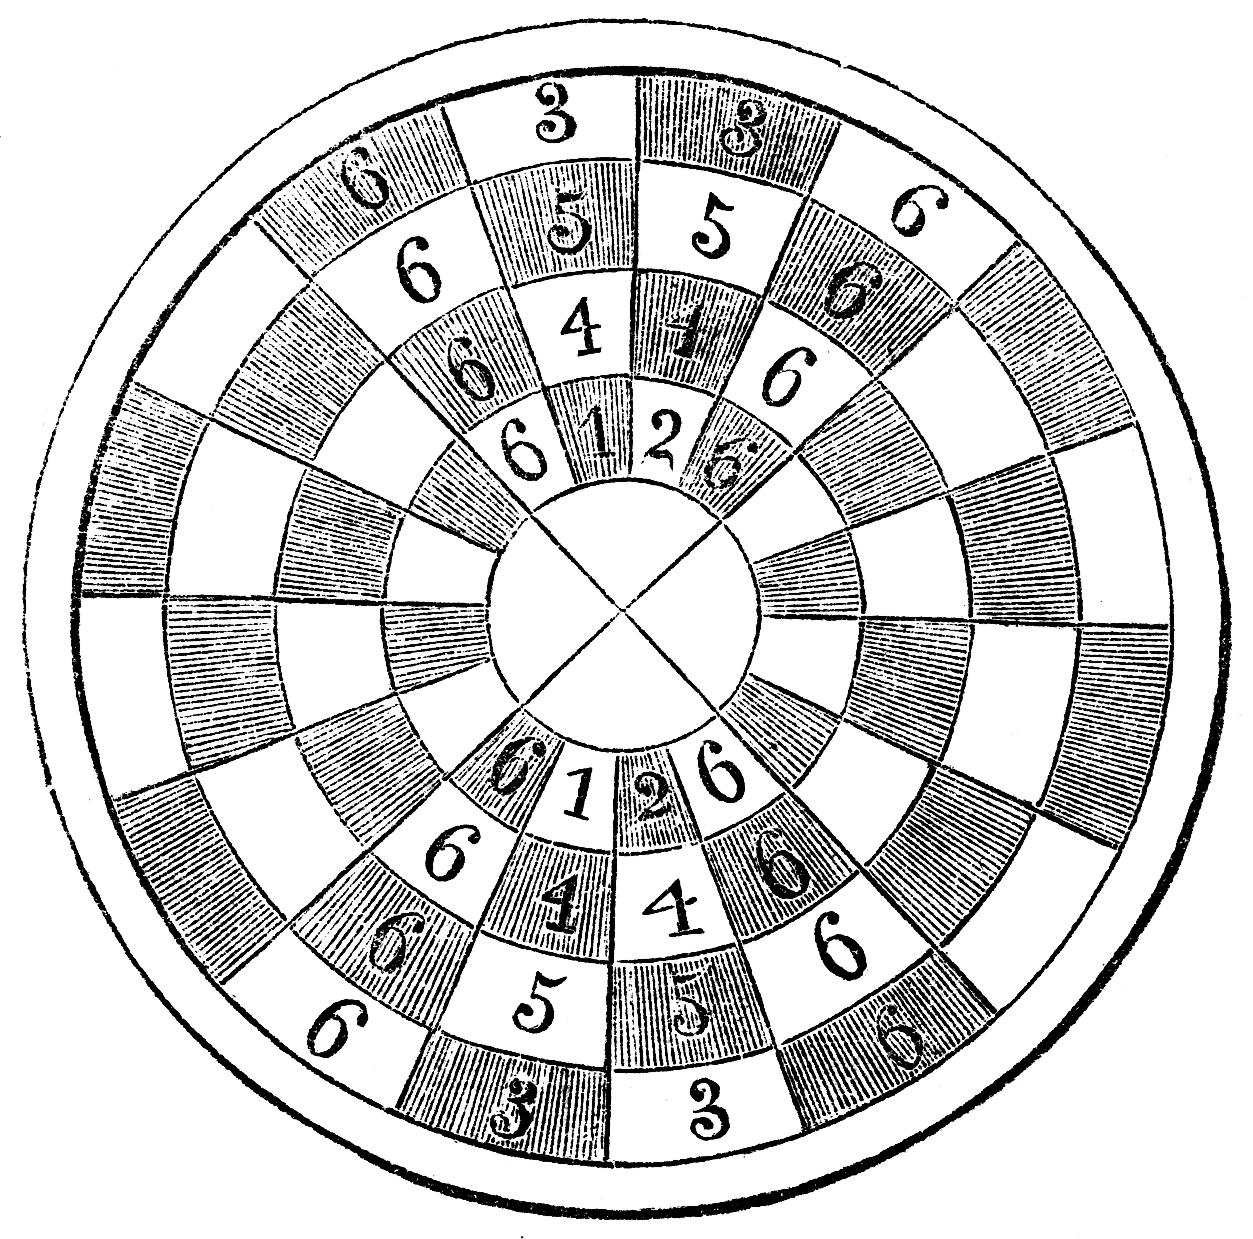 Chess Board Measurements